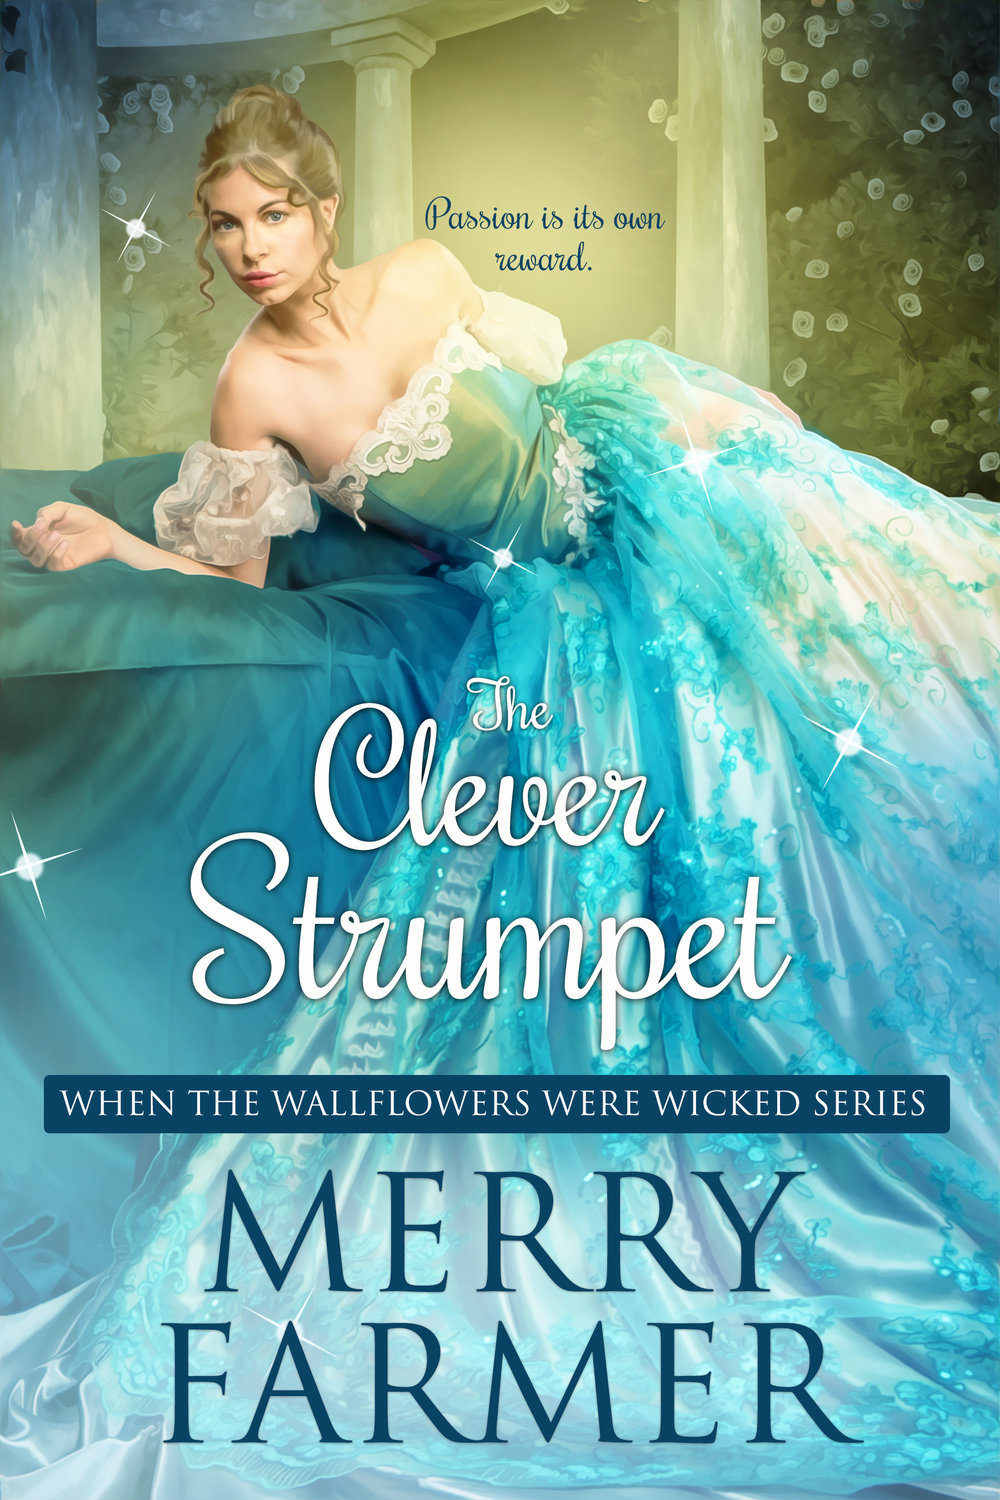 The Clever Strumpet (Book Six) - Lady Caroline Pepys has taken matters into her own hands. Now that she is mistress of the school for young ladies with ruined reputations, she plans not only to give her friends the tools they will need to survive in a hostile world, she intends to claim the hand of the rakish Lord Rufus Herrington for herself. But first she plans to recover the missing Chandramukhi Diamond and bring its thief to justice.Rufus has never fallen so head-over-heels in love with a woman in his life, and he will stop at nothing to help Caro in her quest to recover the diamond. But with pressure mounting for him to marry in order to restore his family's fortunes, will his dalliance with Caro be his last affair before a lifetime of misery or will he and Caro find a way for love to conquer all?A light-hearted, fun, SUPER steamy, Regency romp—a quick read, not to be taken too seriously.PLEASE BE ADVISED – Steam Level: Five-Alarm Fire with a few F-bombs. Don't say you weren't warned.